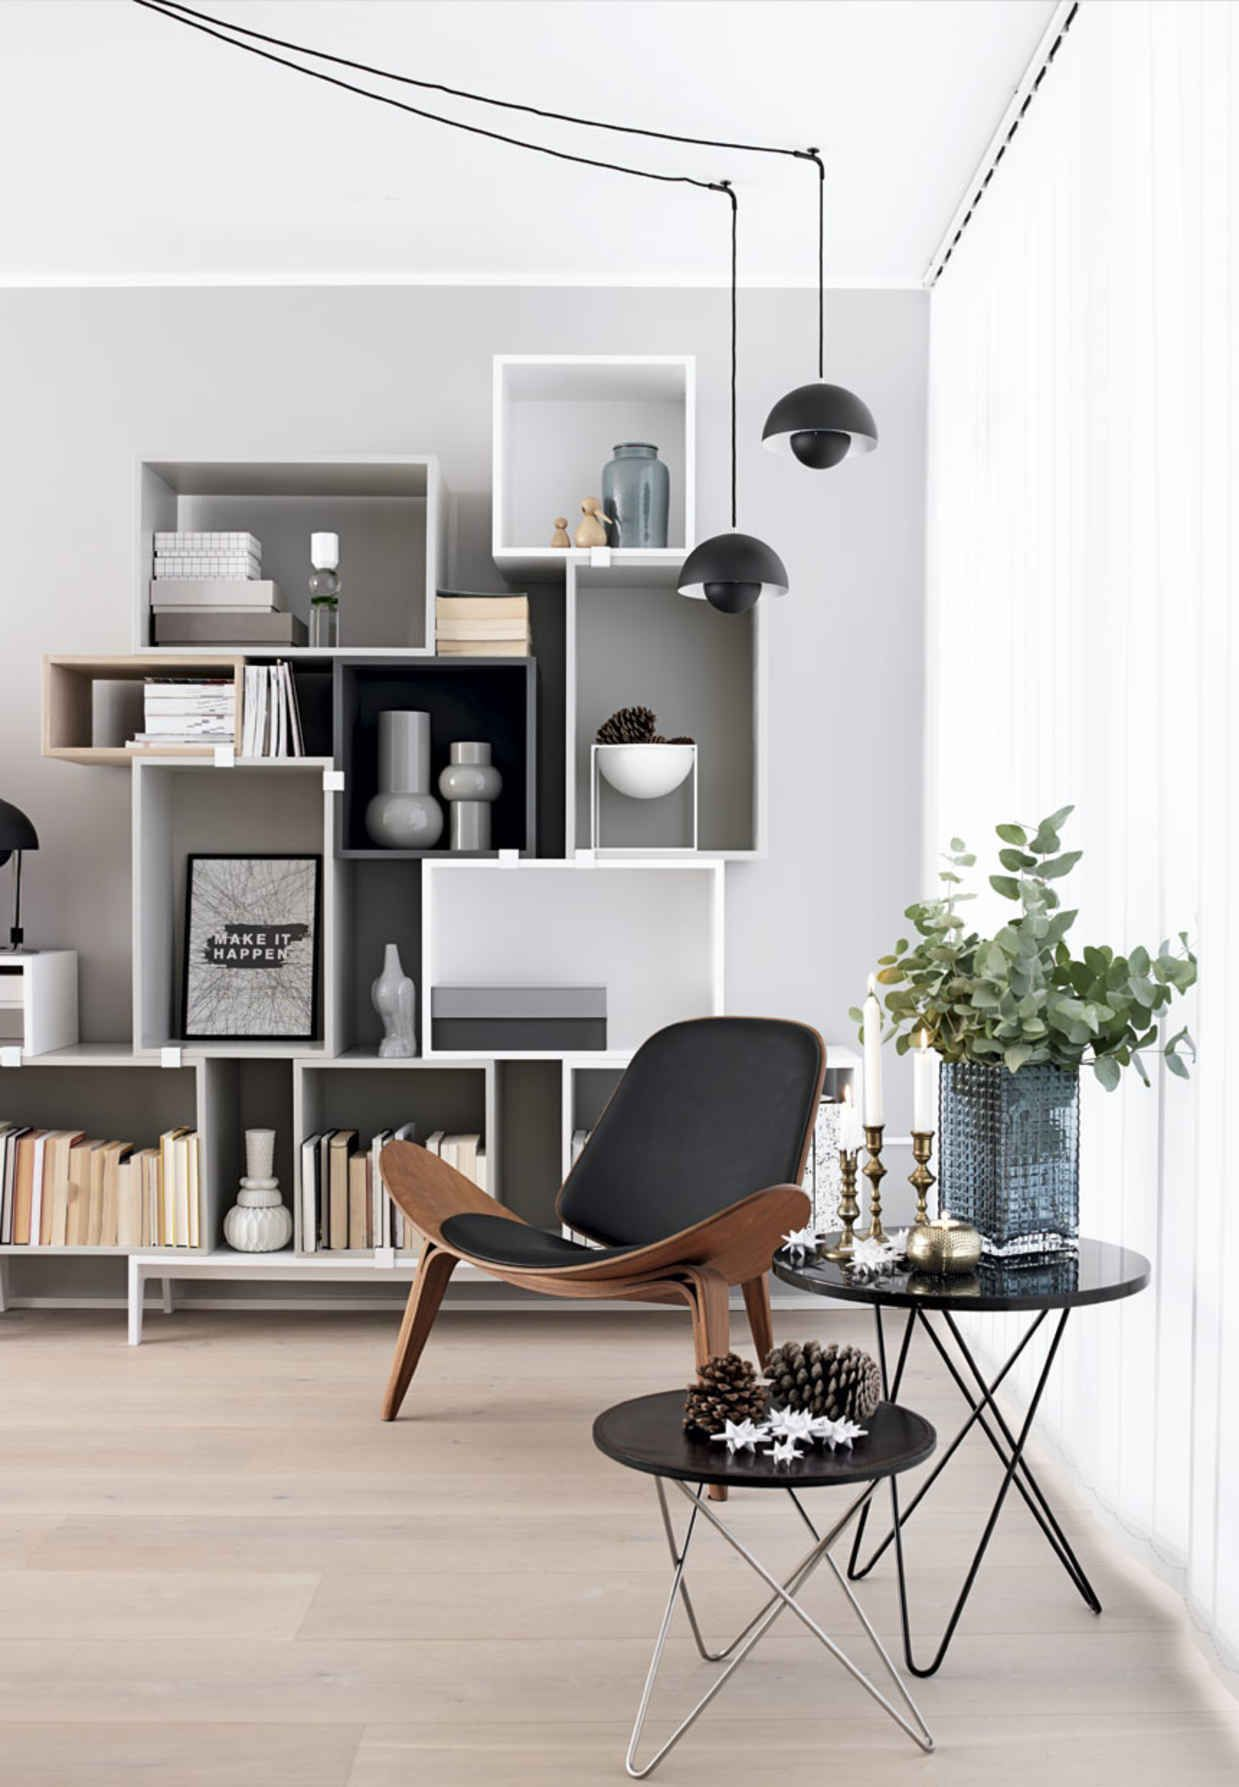 50 examples of beautiful scandinavian interior design for Scandinavian interior